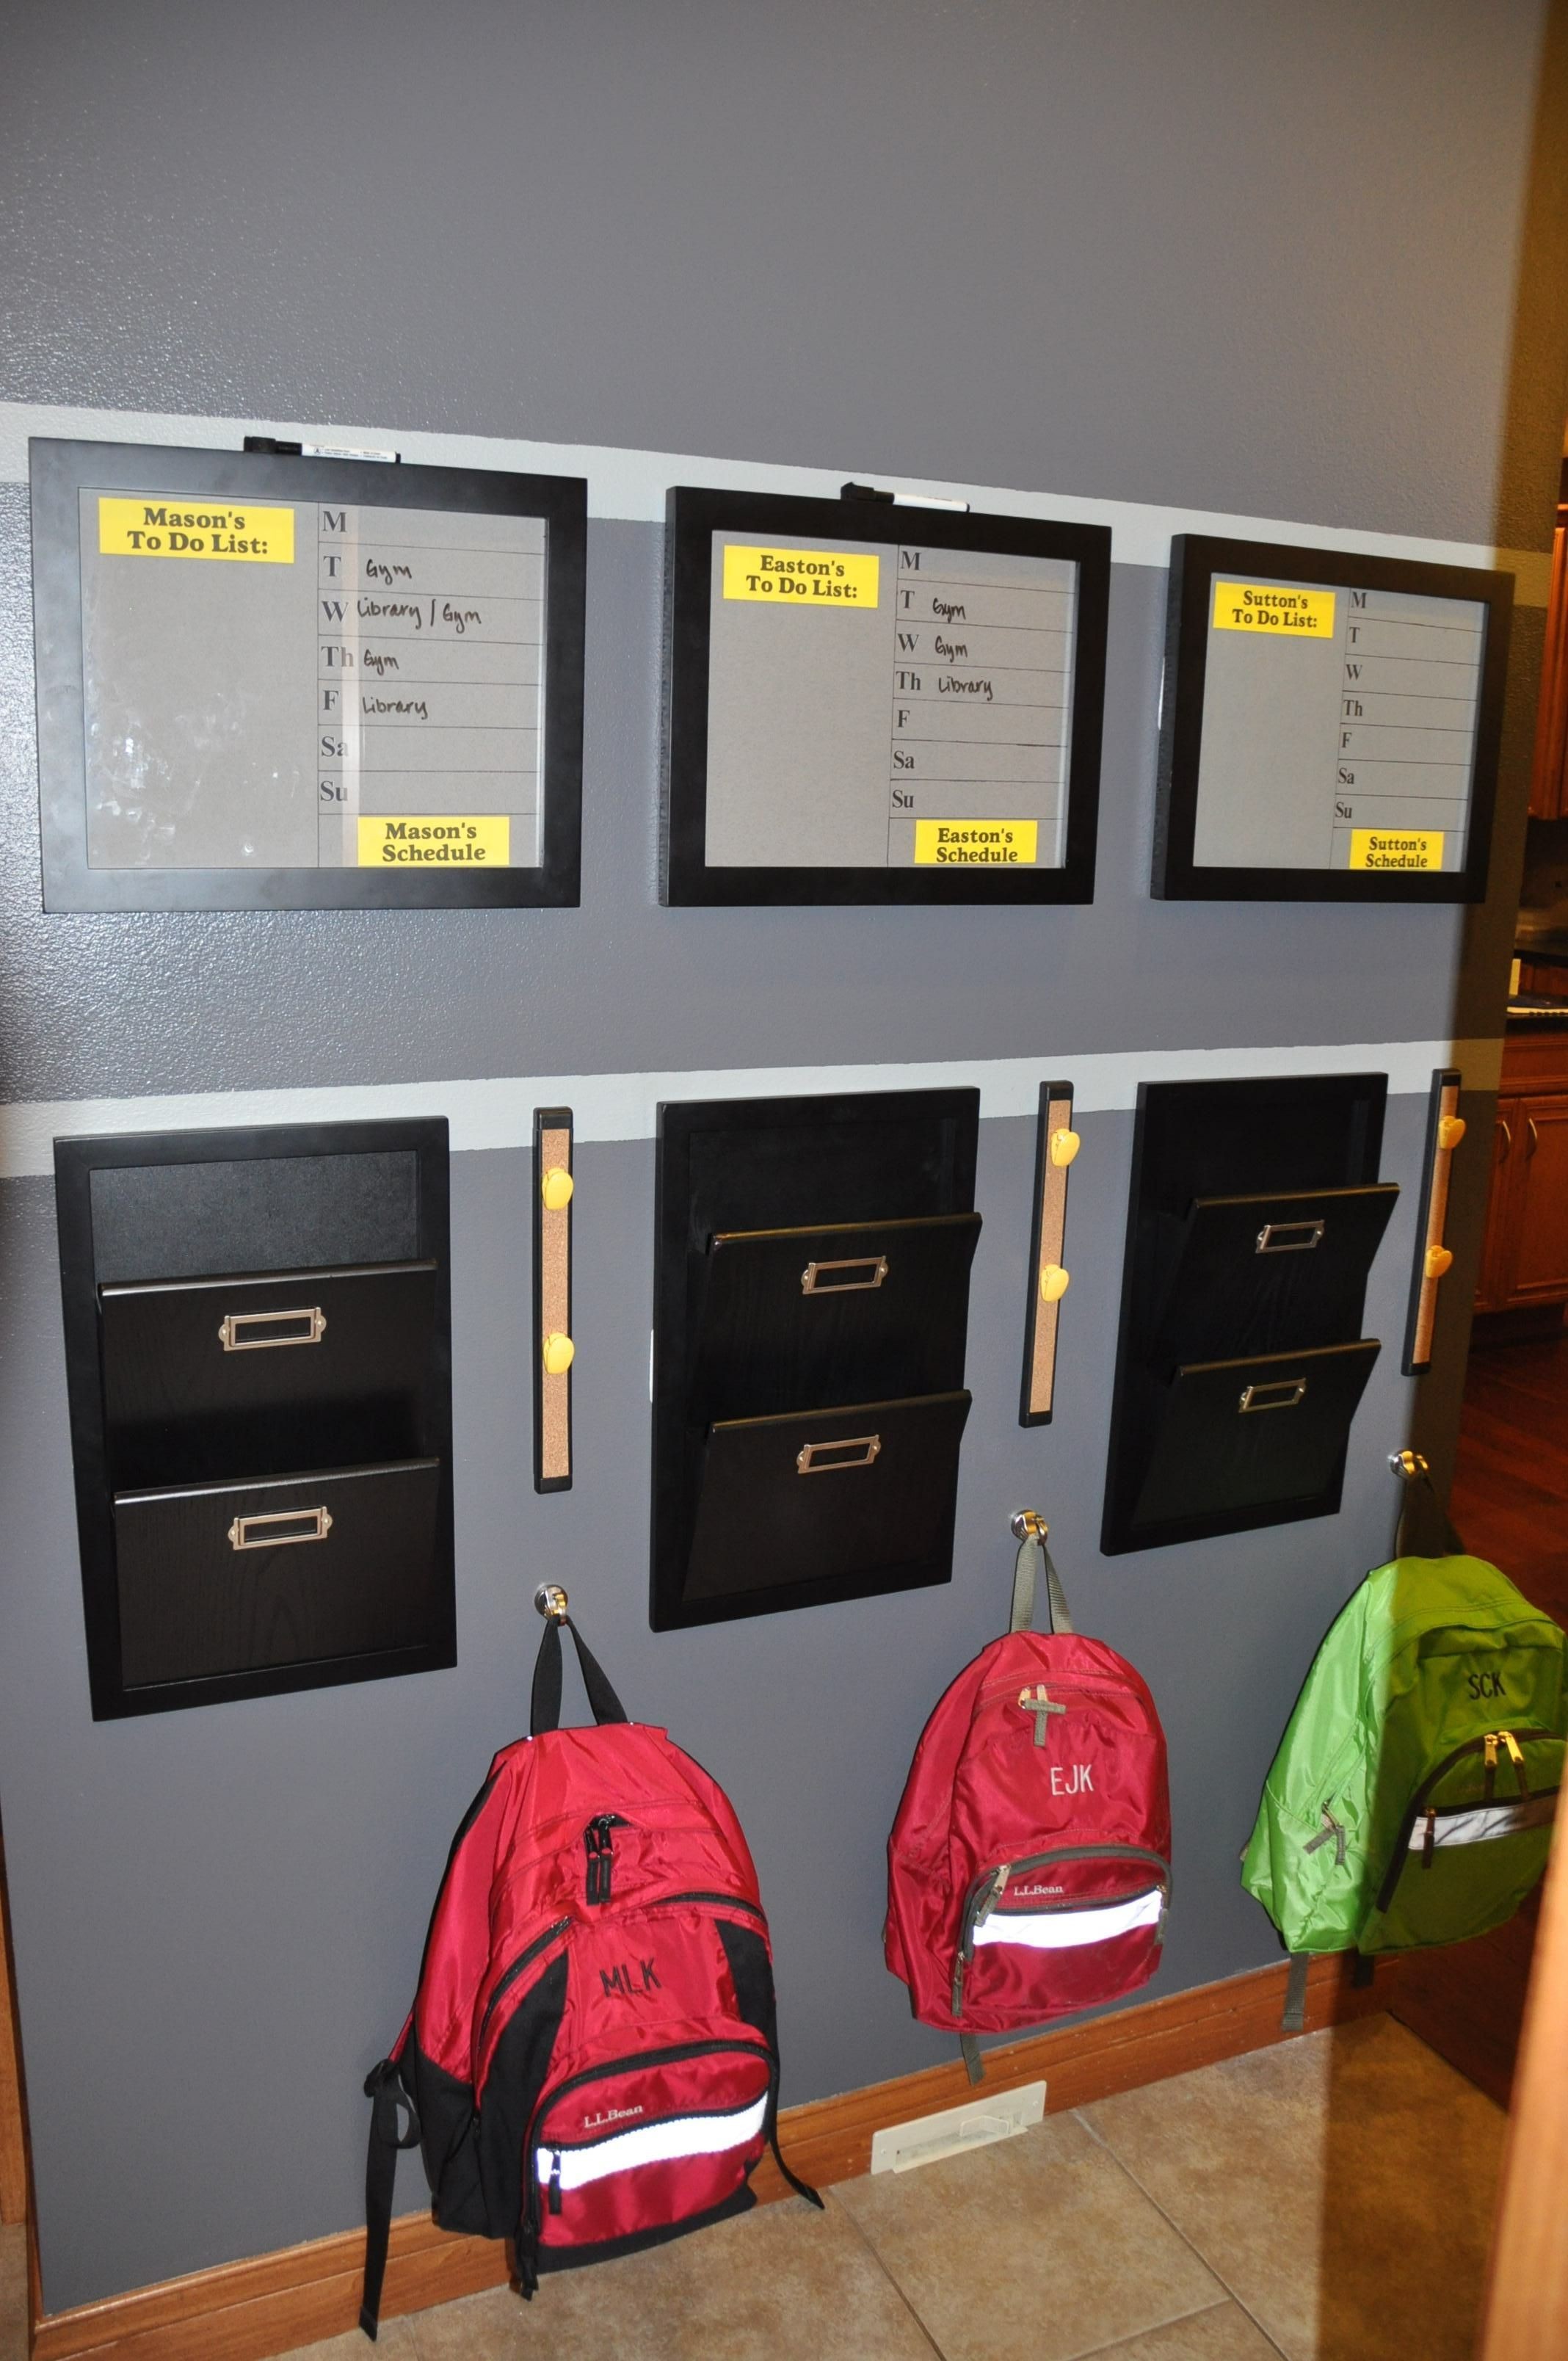 25 bag storage ideas central station organizations and